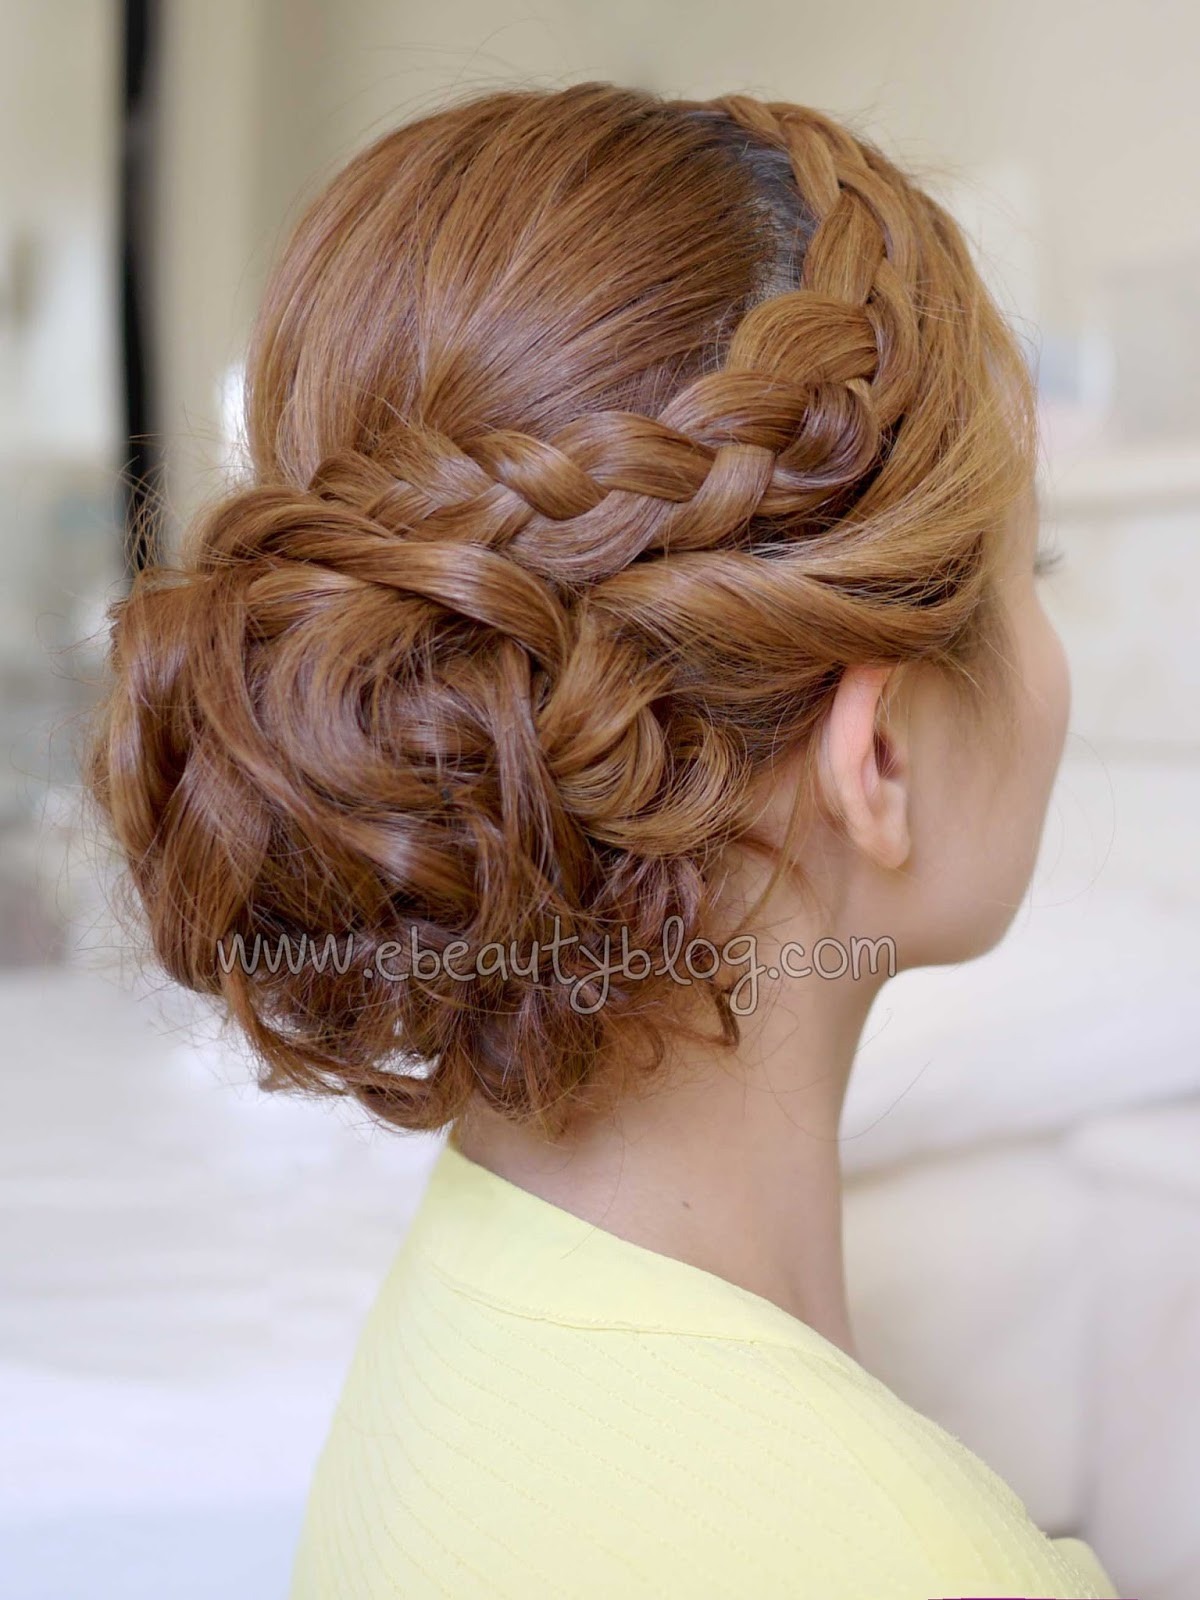 Homecoming Hairstyles For Medium Hair  Curly prom hairstyles for medium hair Hairstyle for